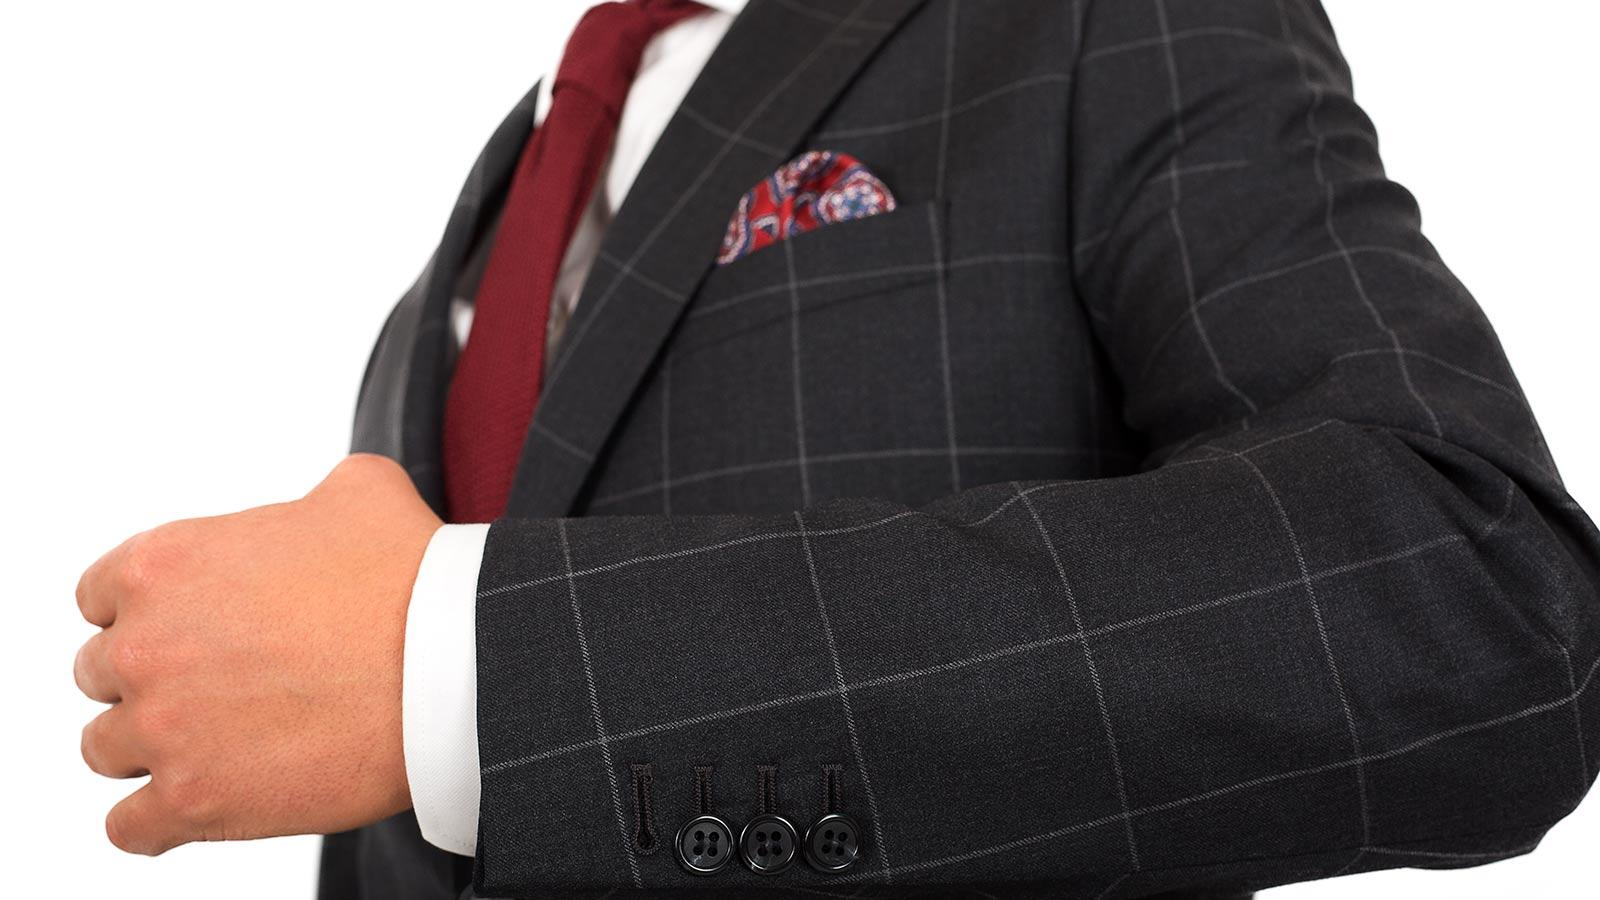 Charcoal Check Suit - slider image 1